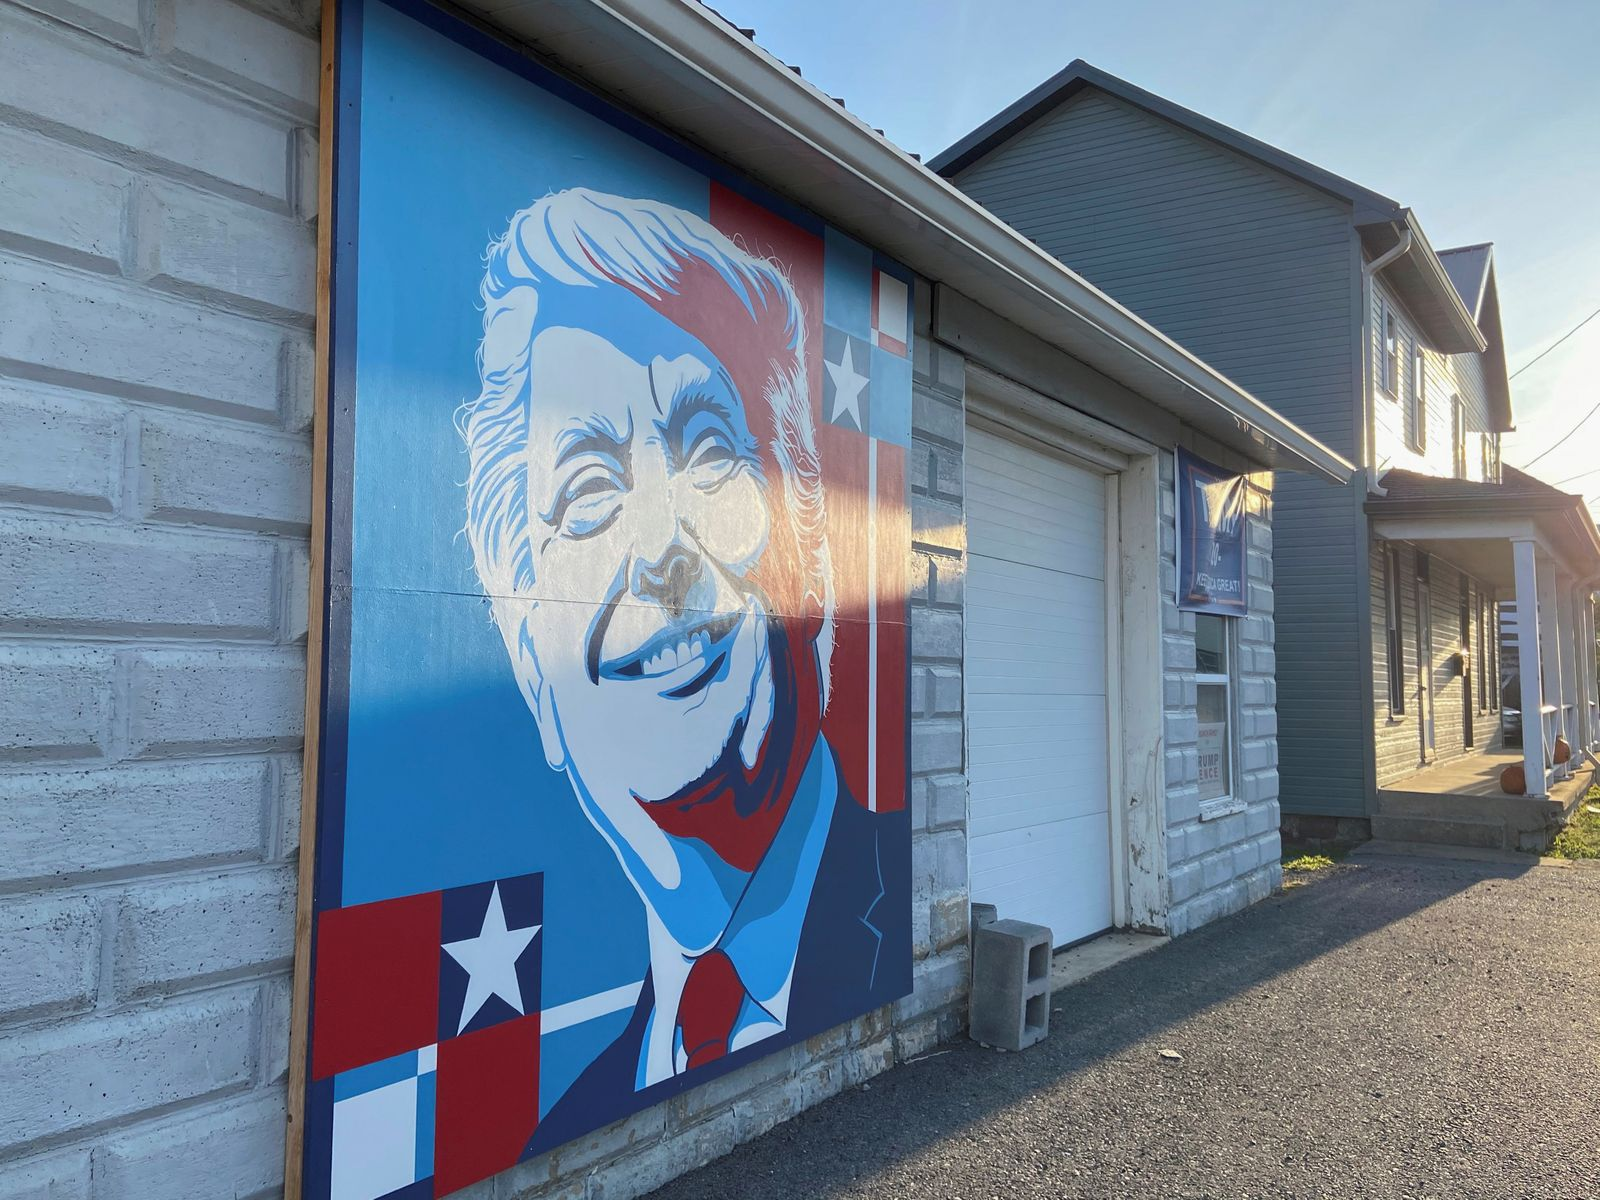 A mural of a smiling U.S. President Donald Trump commissioned by Randy Bunch, a commissioner in Fulton County, is seen on the side of a business on Election Day in McConnellsburg, Pennsylvania